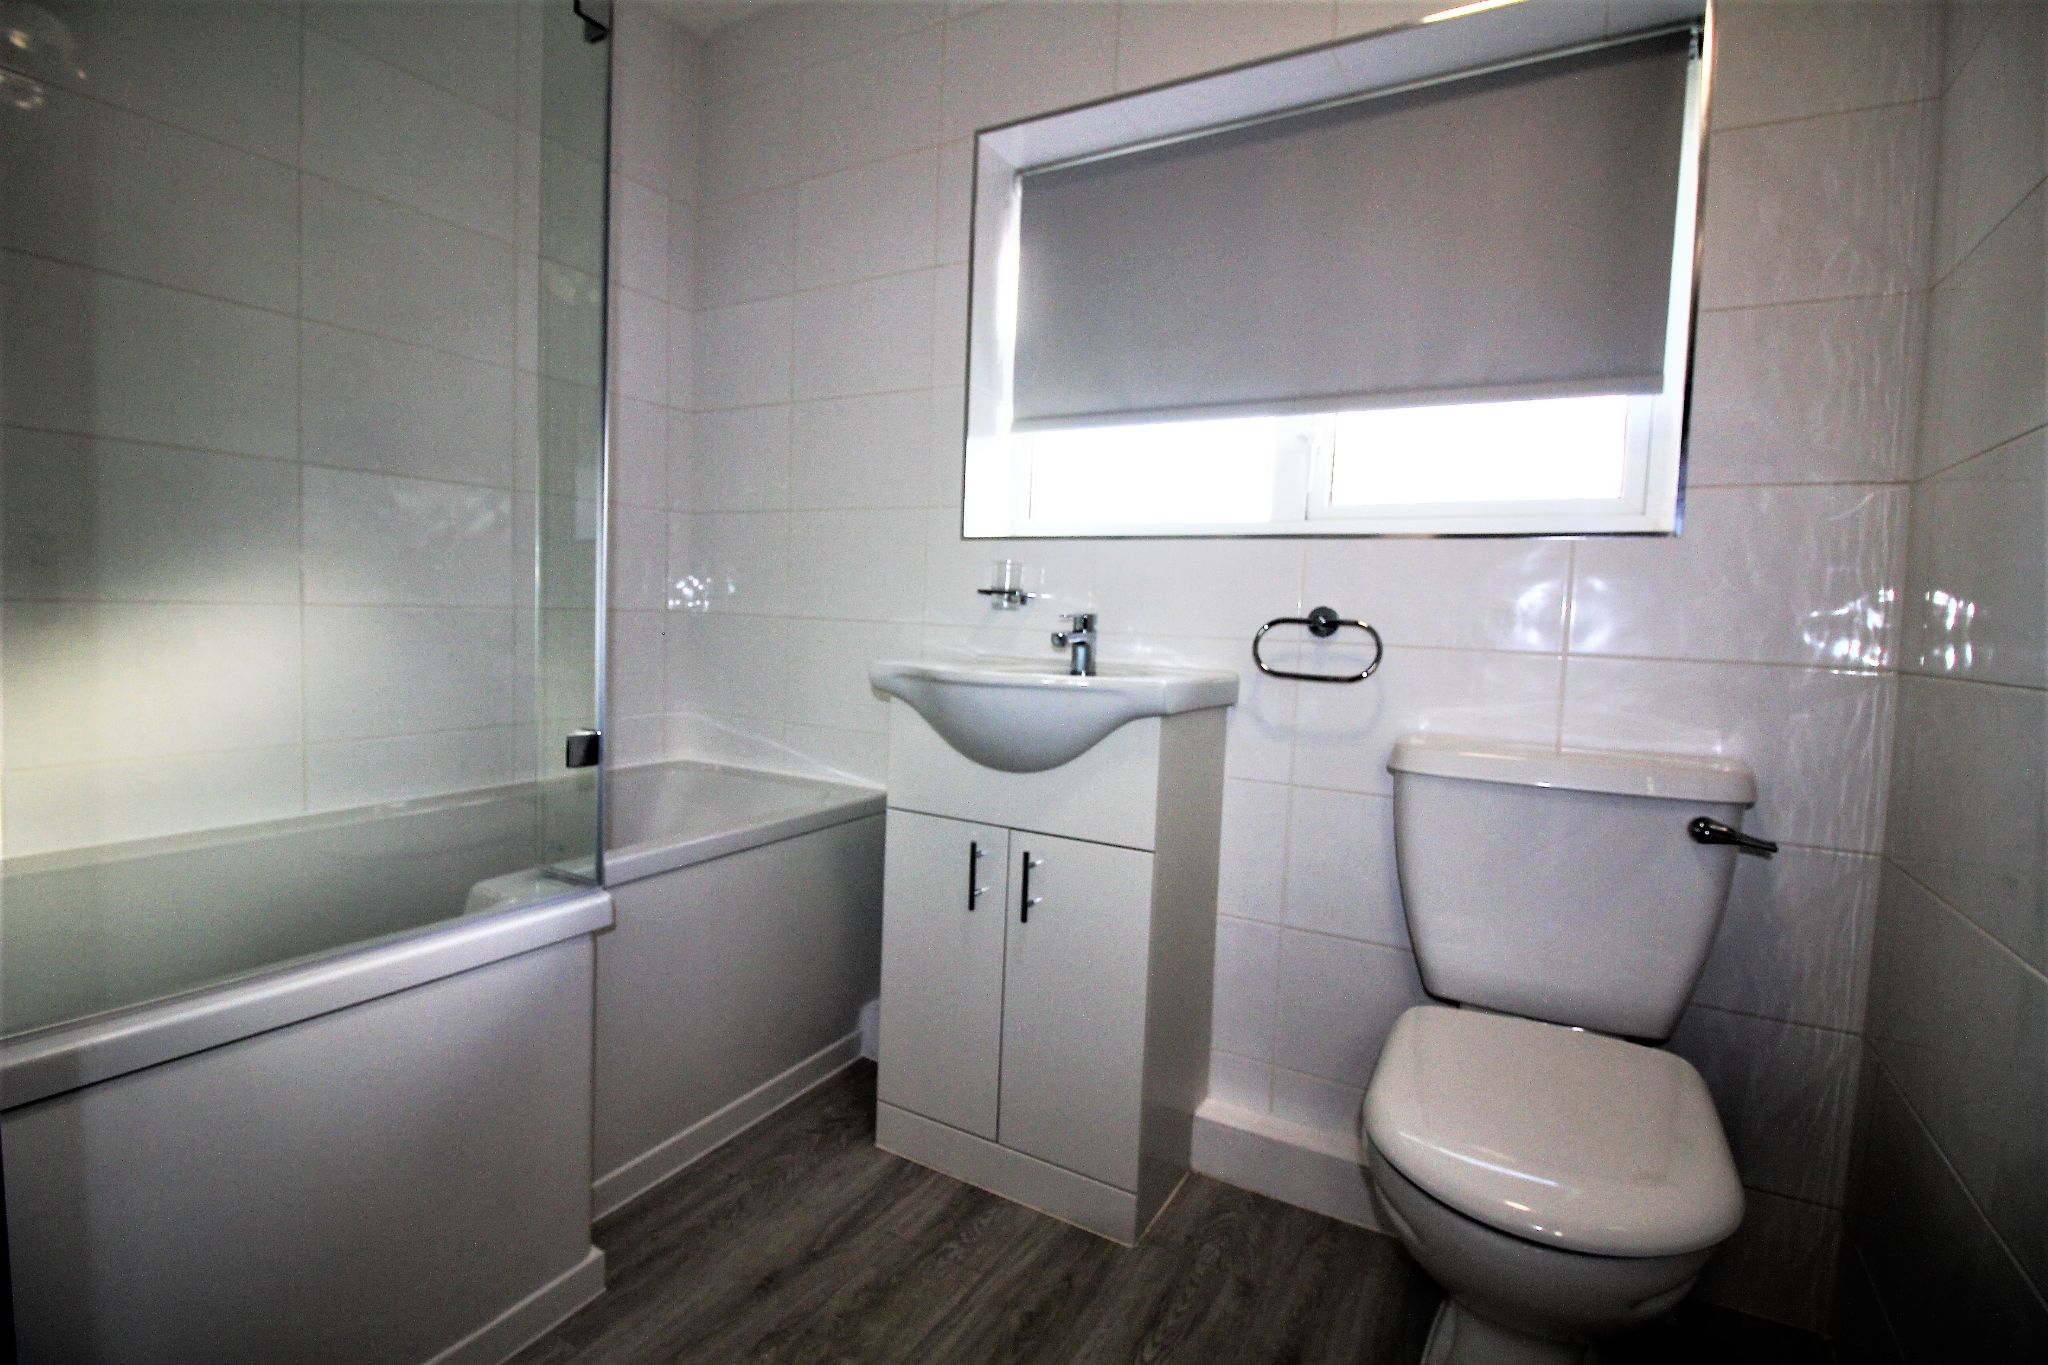 3 bedroom semi-detached house Let Agreed in Solihull - Photograph 12.